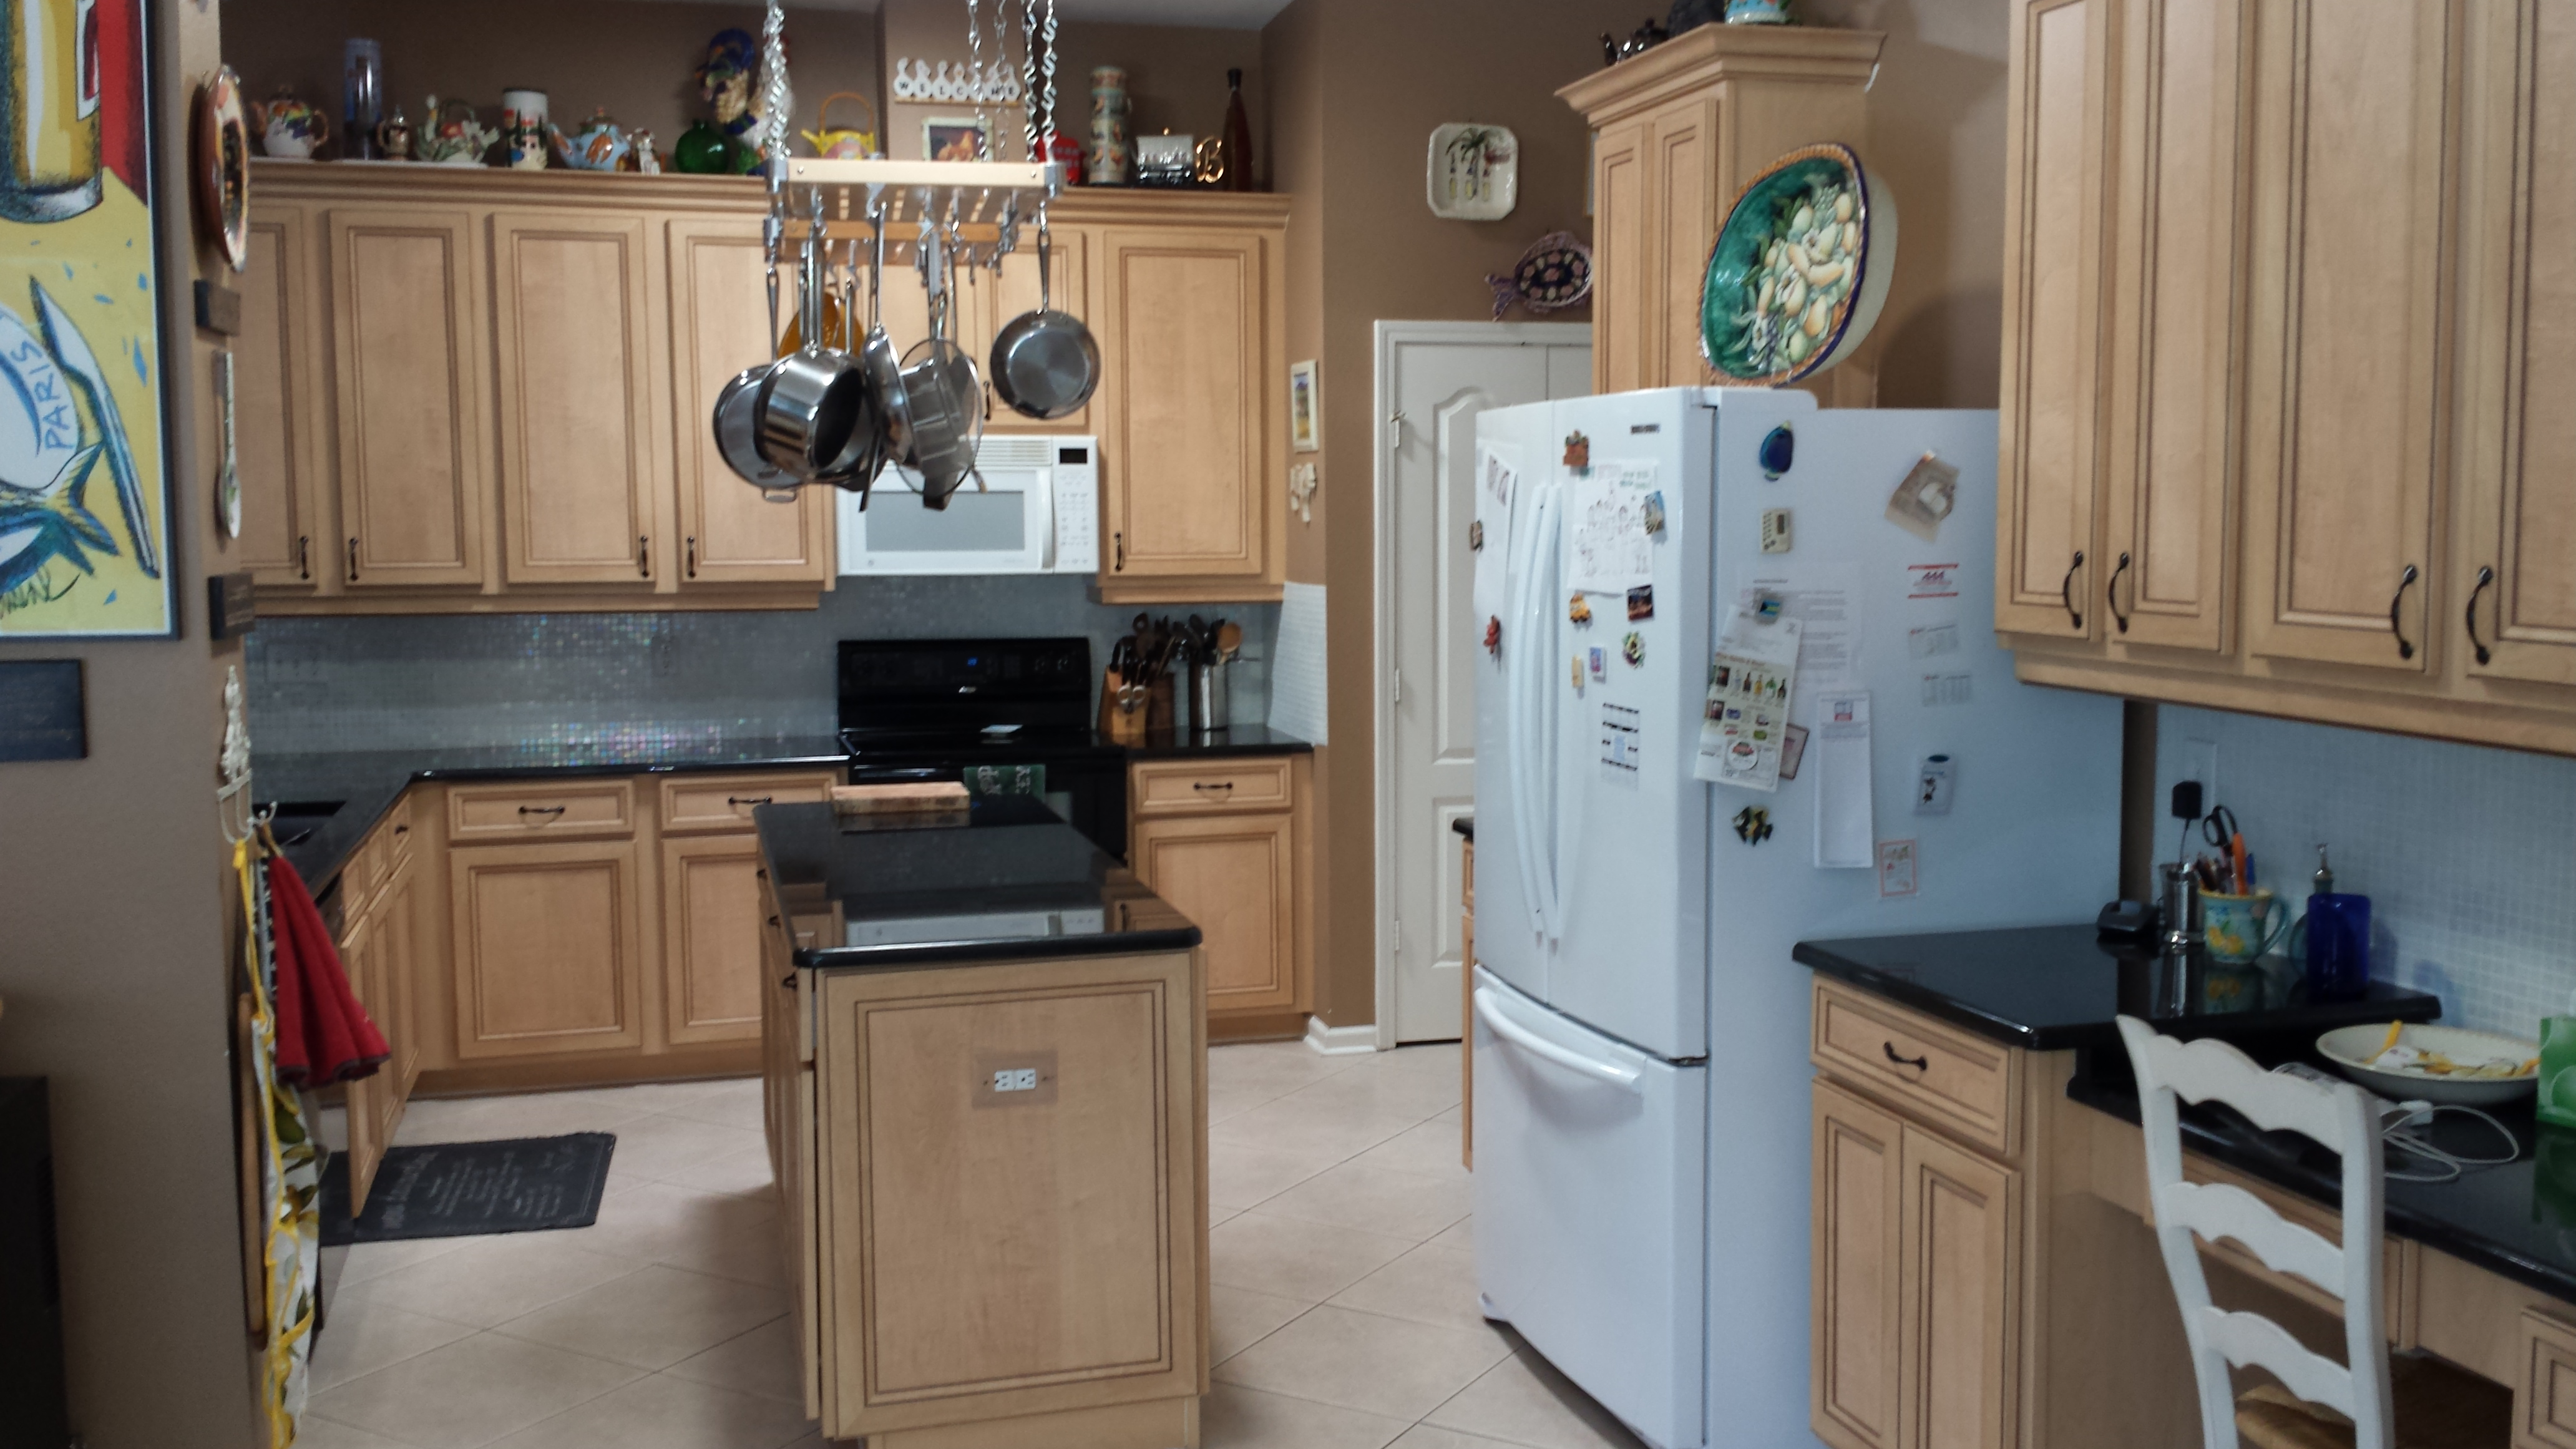 Superbe Re A Door Kitchen Cabinets Refacing 2502 West Carmen Street #1 Tampa, FL  Cabinets Resurfacing U0026 Refinishing   MapQuest